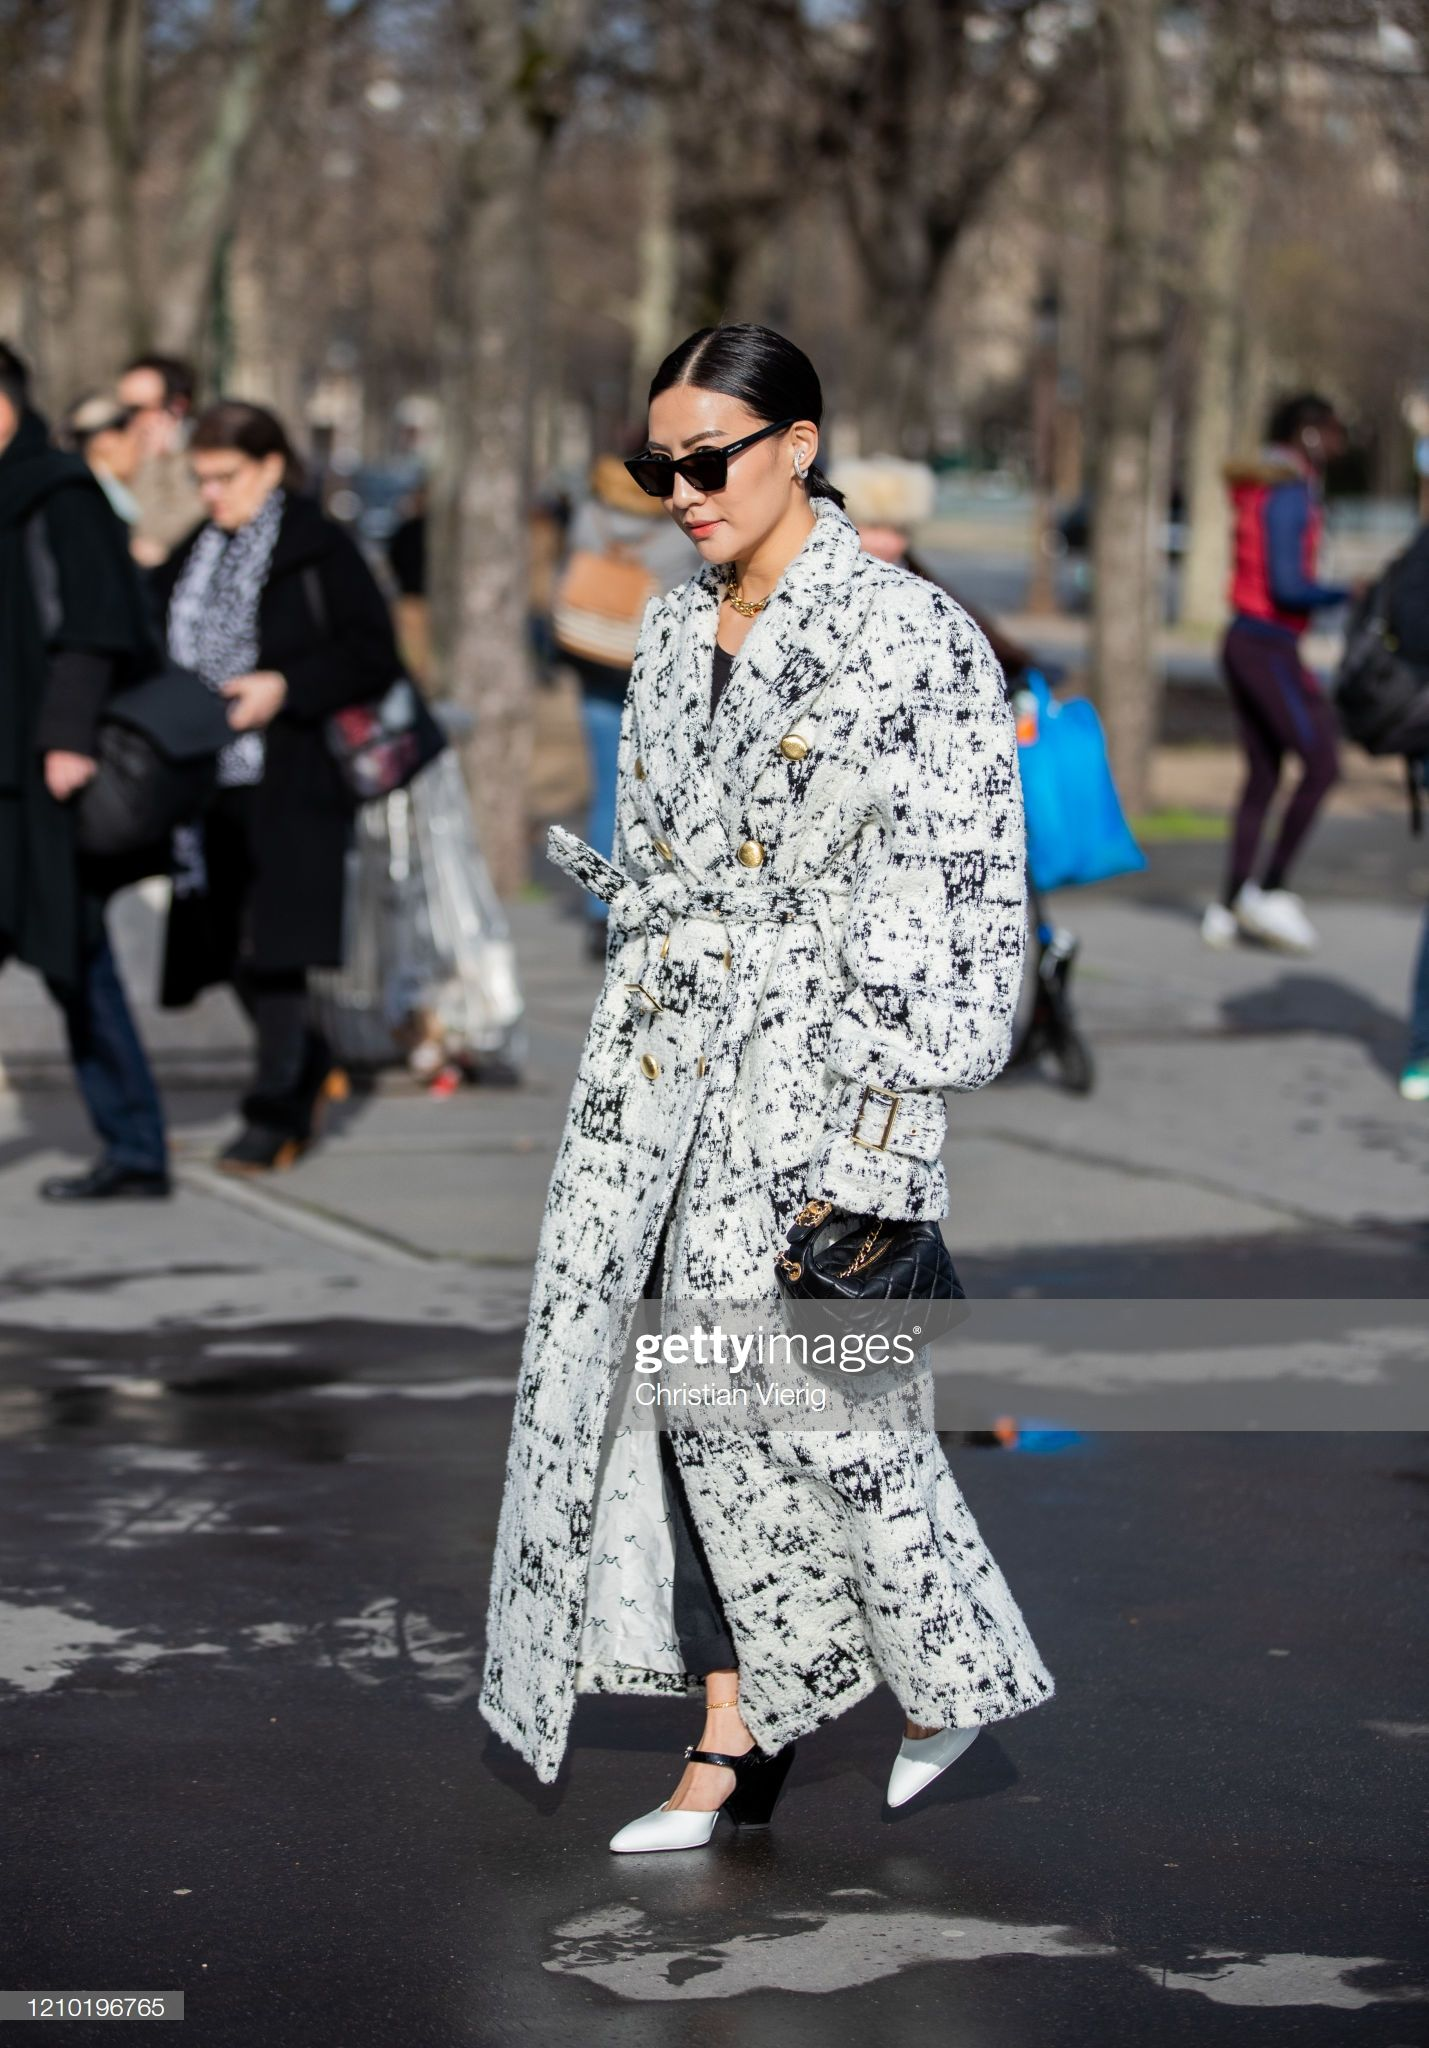 A Guest Is Seen Wearing Coat With Print Outside Chanel During Paris In 2020 Paris Fashion Week Street Style Paris Fashion Week How To Wear